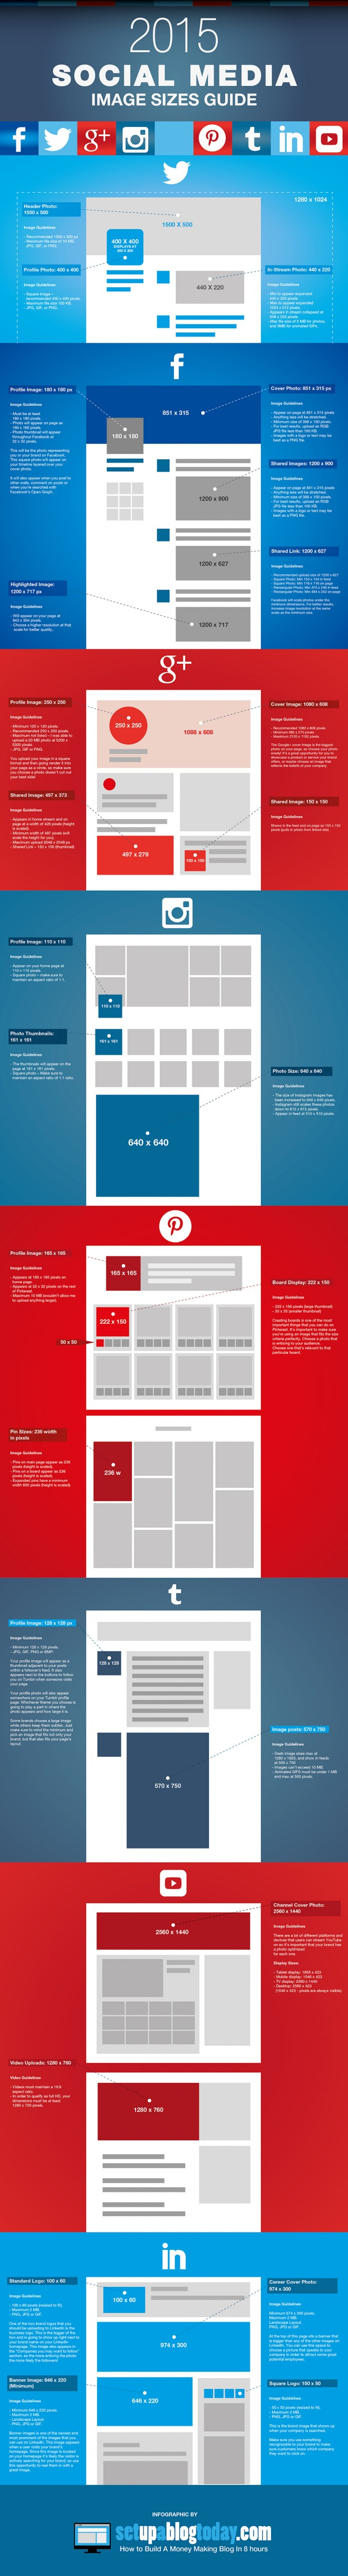 The Essential Social Media Image Size Cheat Sheet